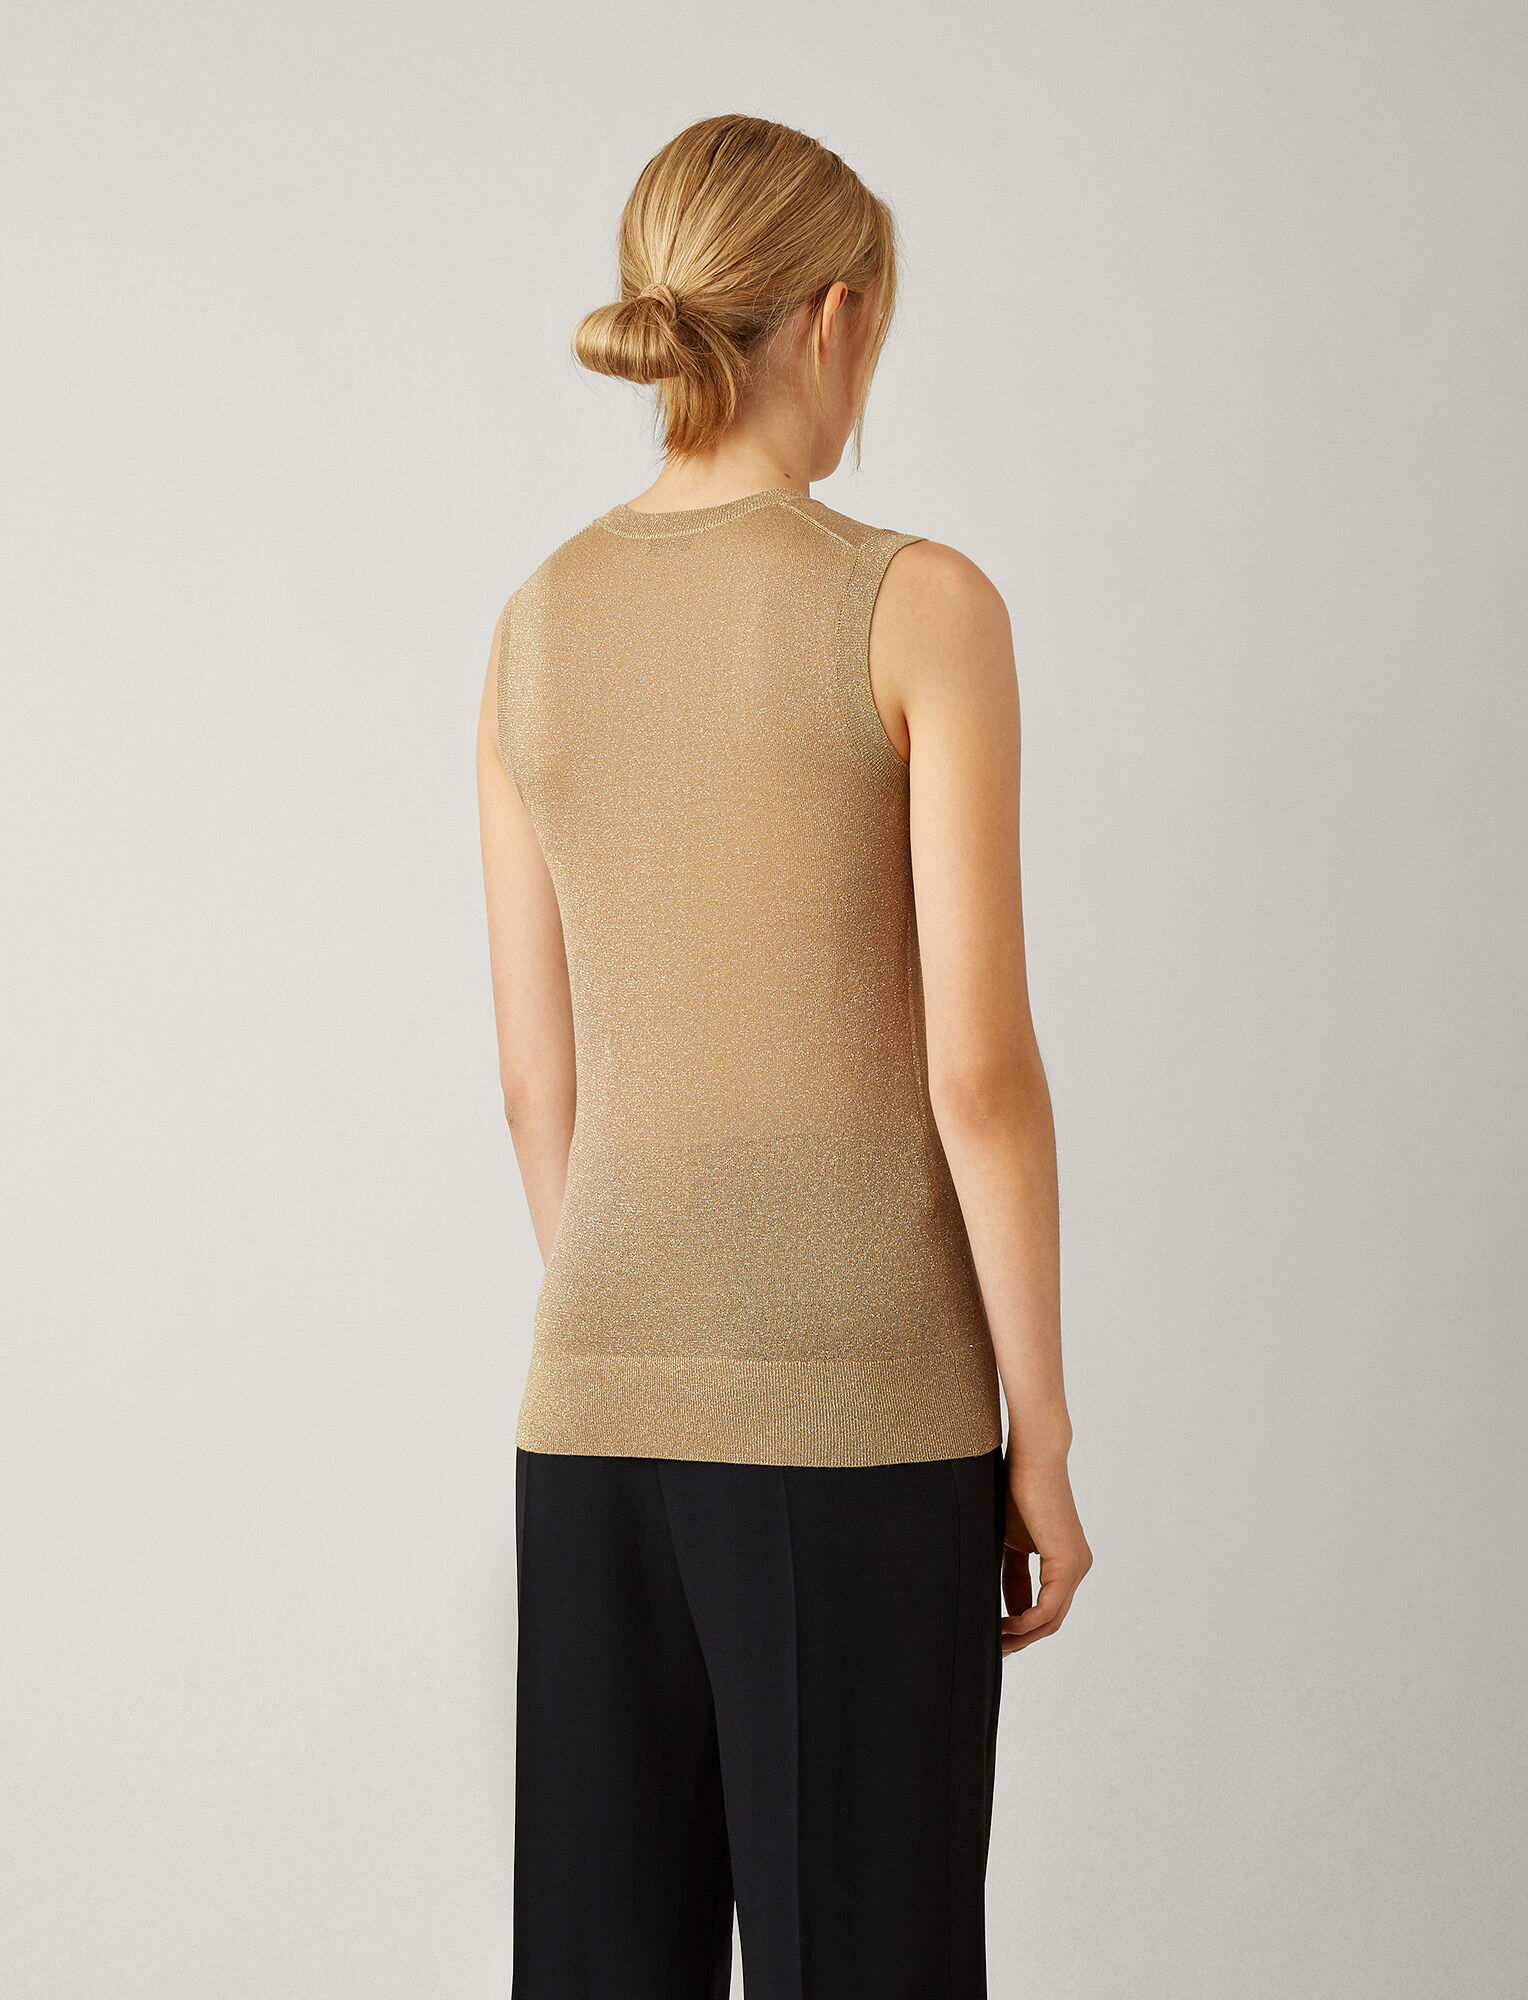 Joseph, Tank Lurex Knit, in TAN